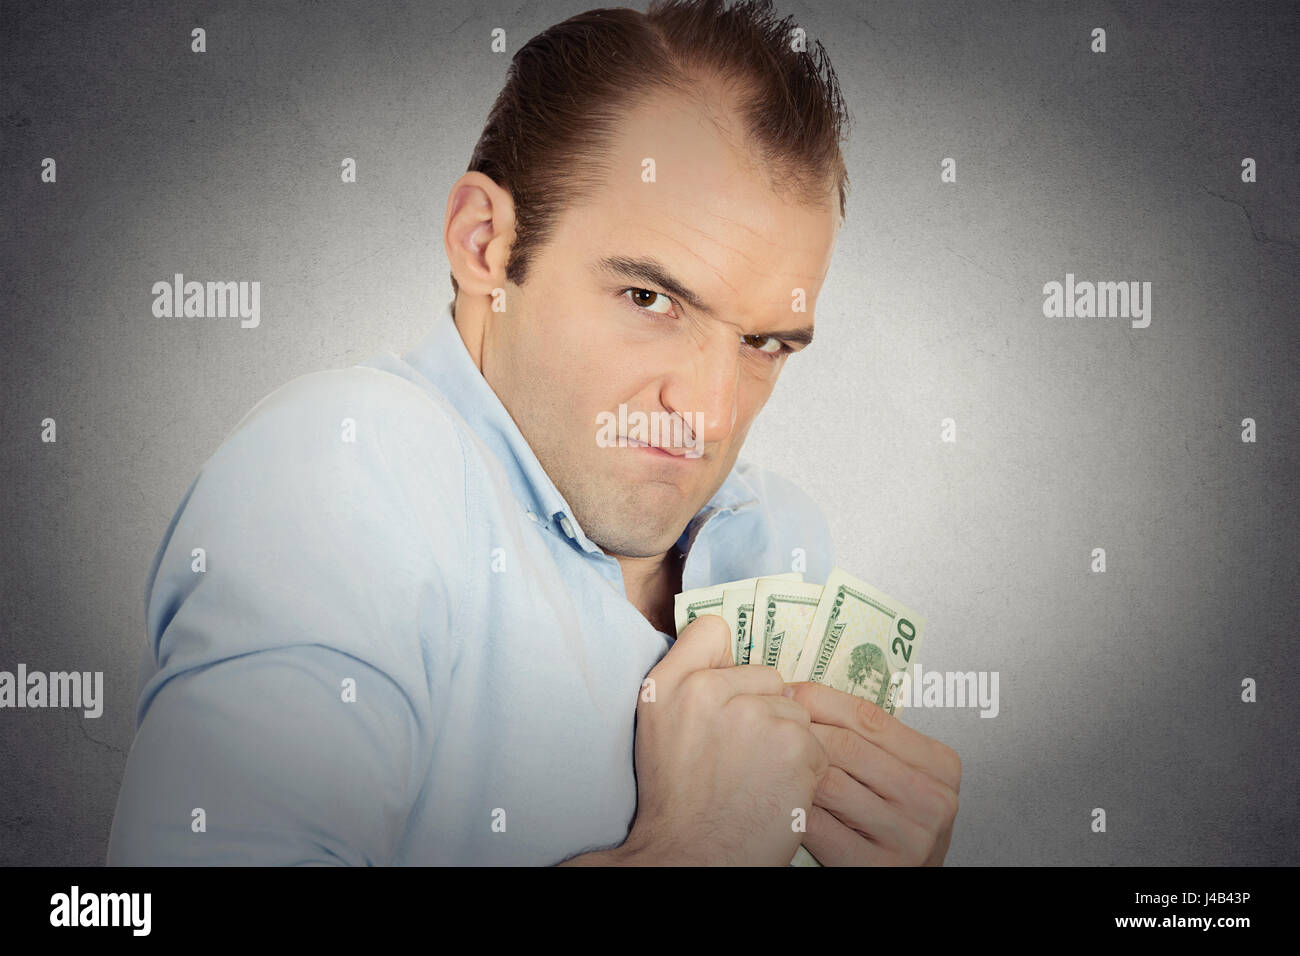 Closeup portrait greedy banker executive CEO boss, corporate employee funny looking man holding dollar banknotes - Stock Image